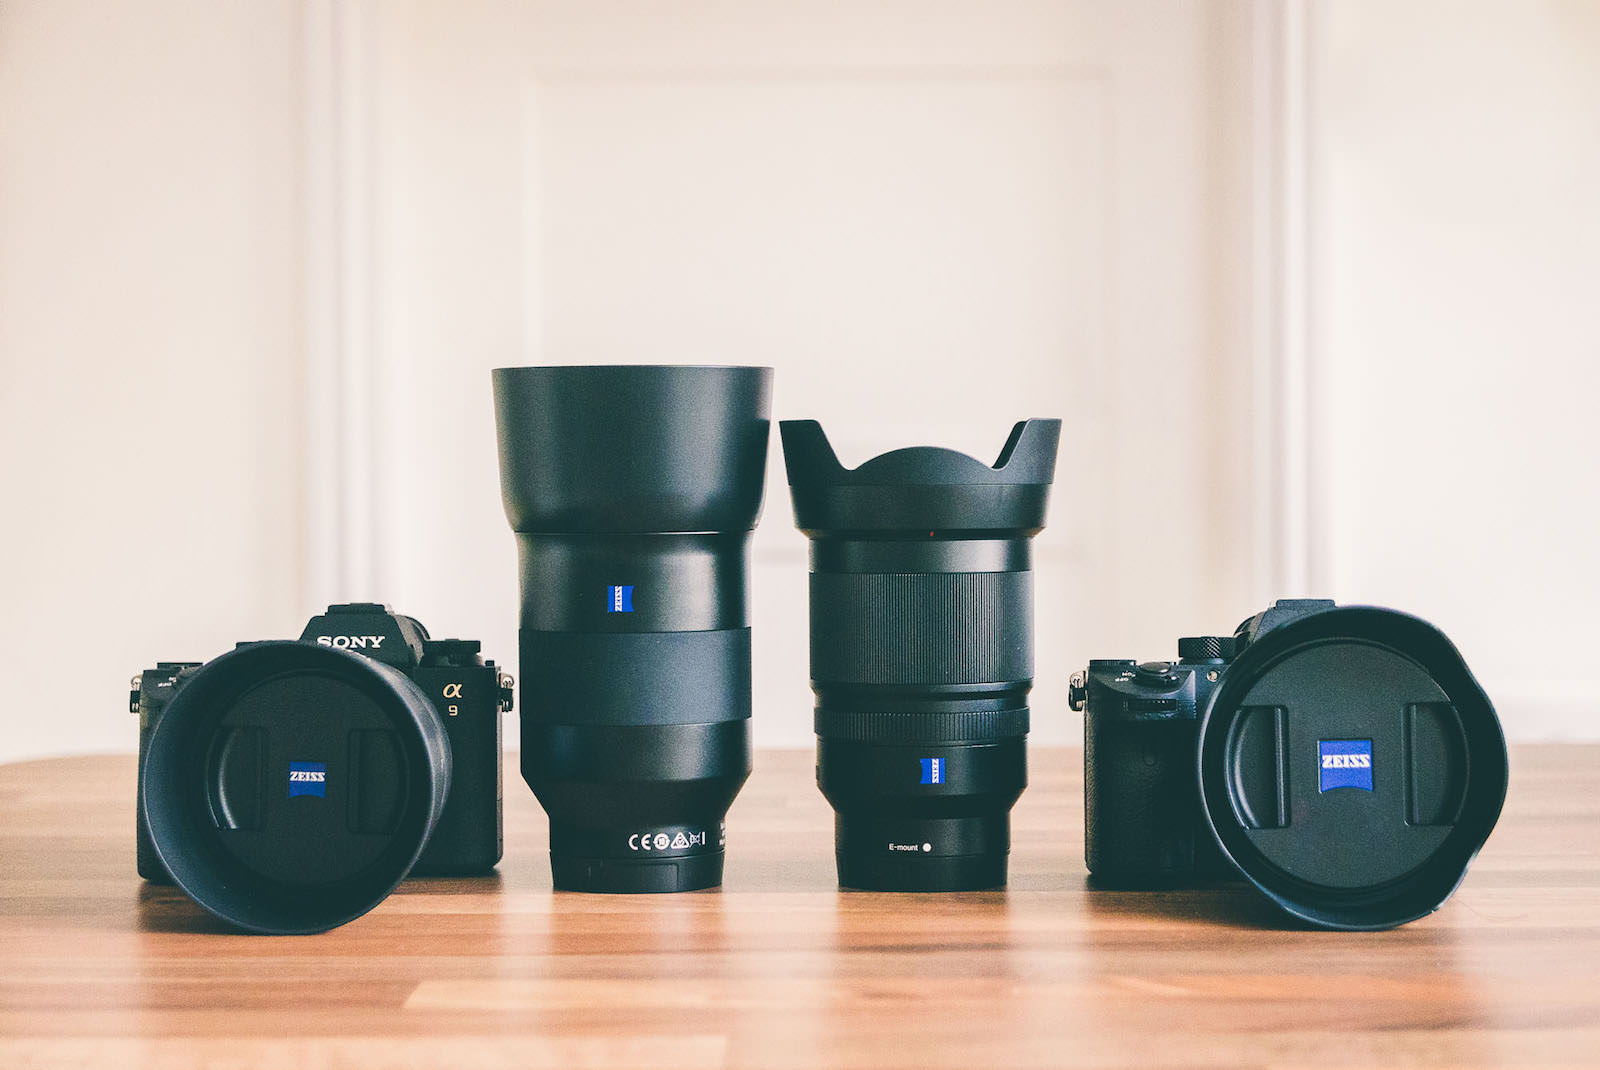 Sony A9 Wedding Photography Review